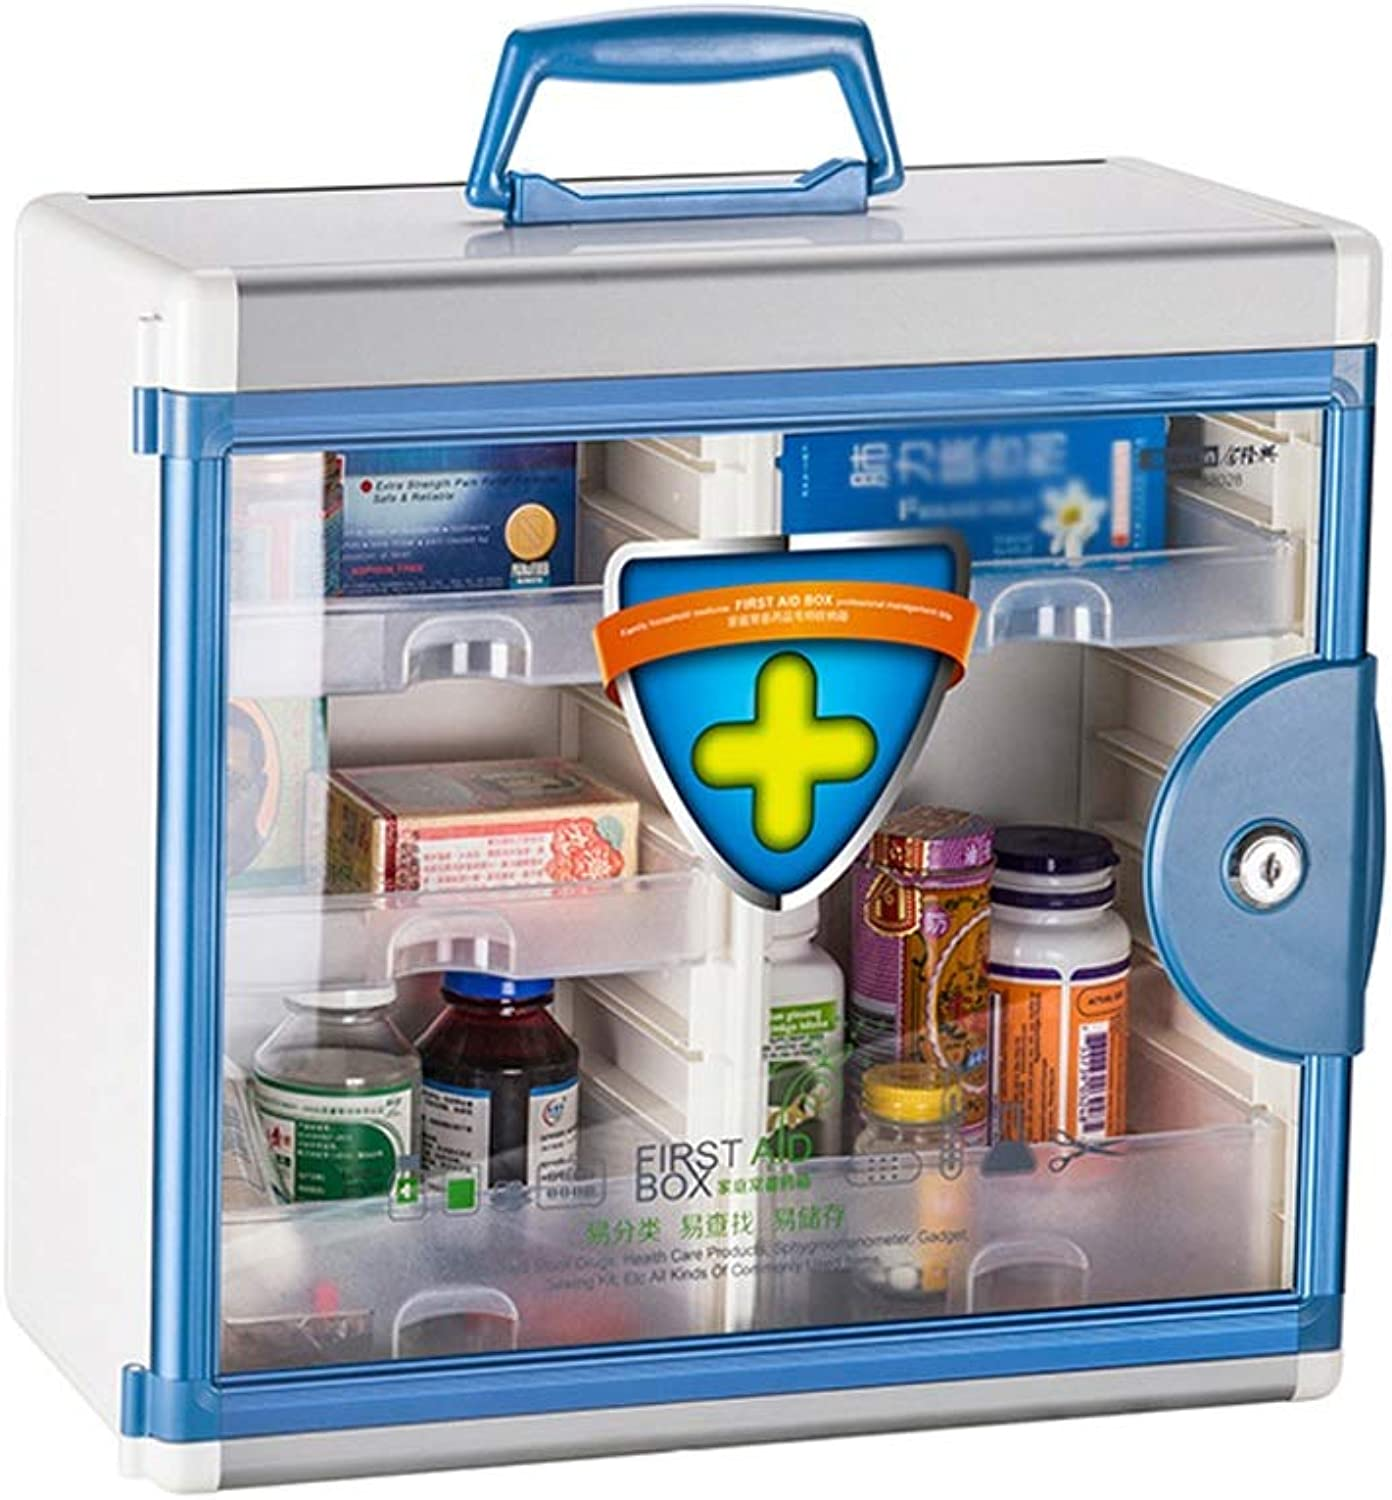 Djyyh First Aid Box Wall Mounted Medical Box, Pharmacy, Aluminium Combination Key Cabinet + Security Glass Door Lockable